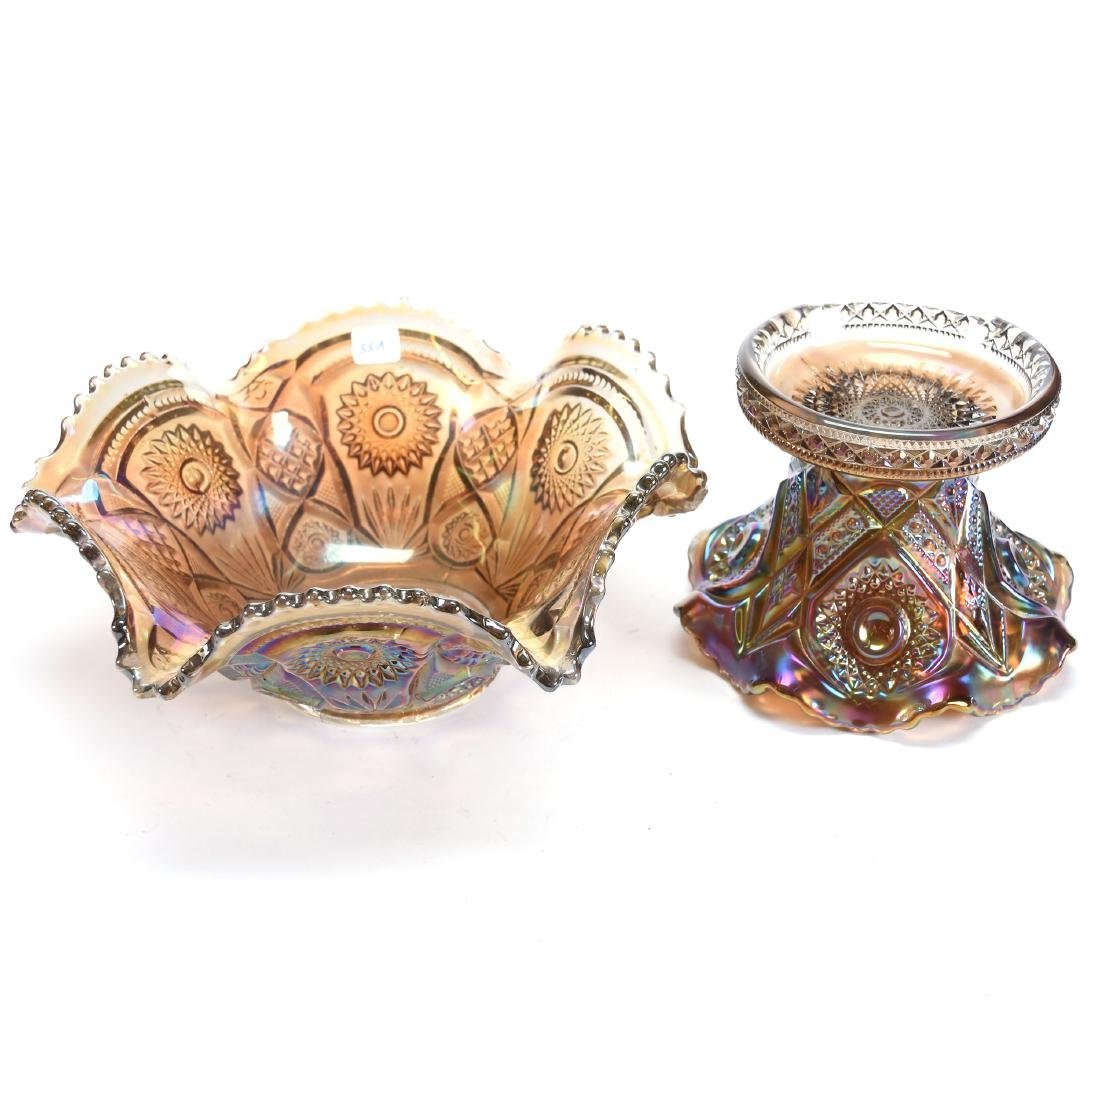 """Carnival Glass Punch Bowl 9.5"""" X 11.5"""" - 2"""